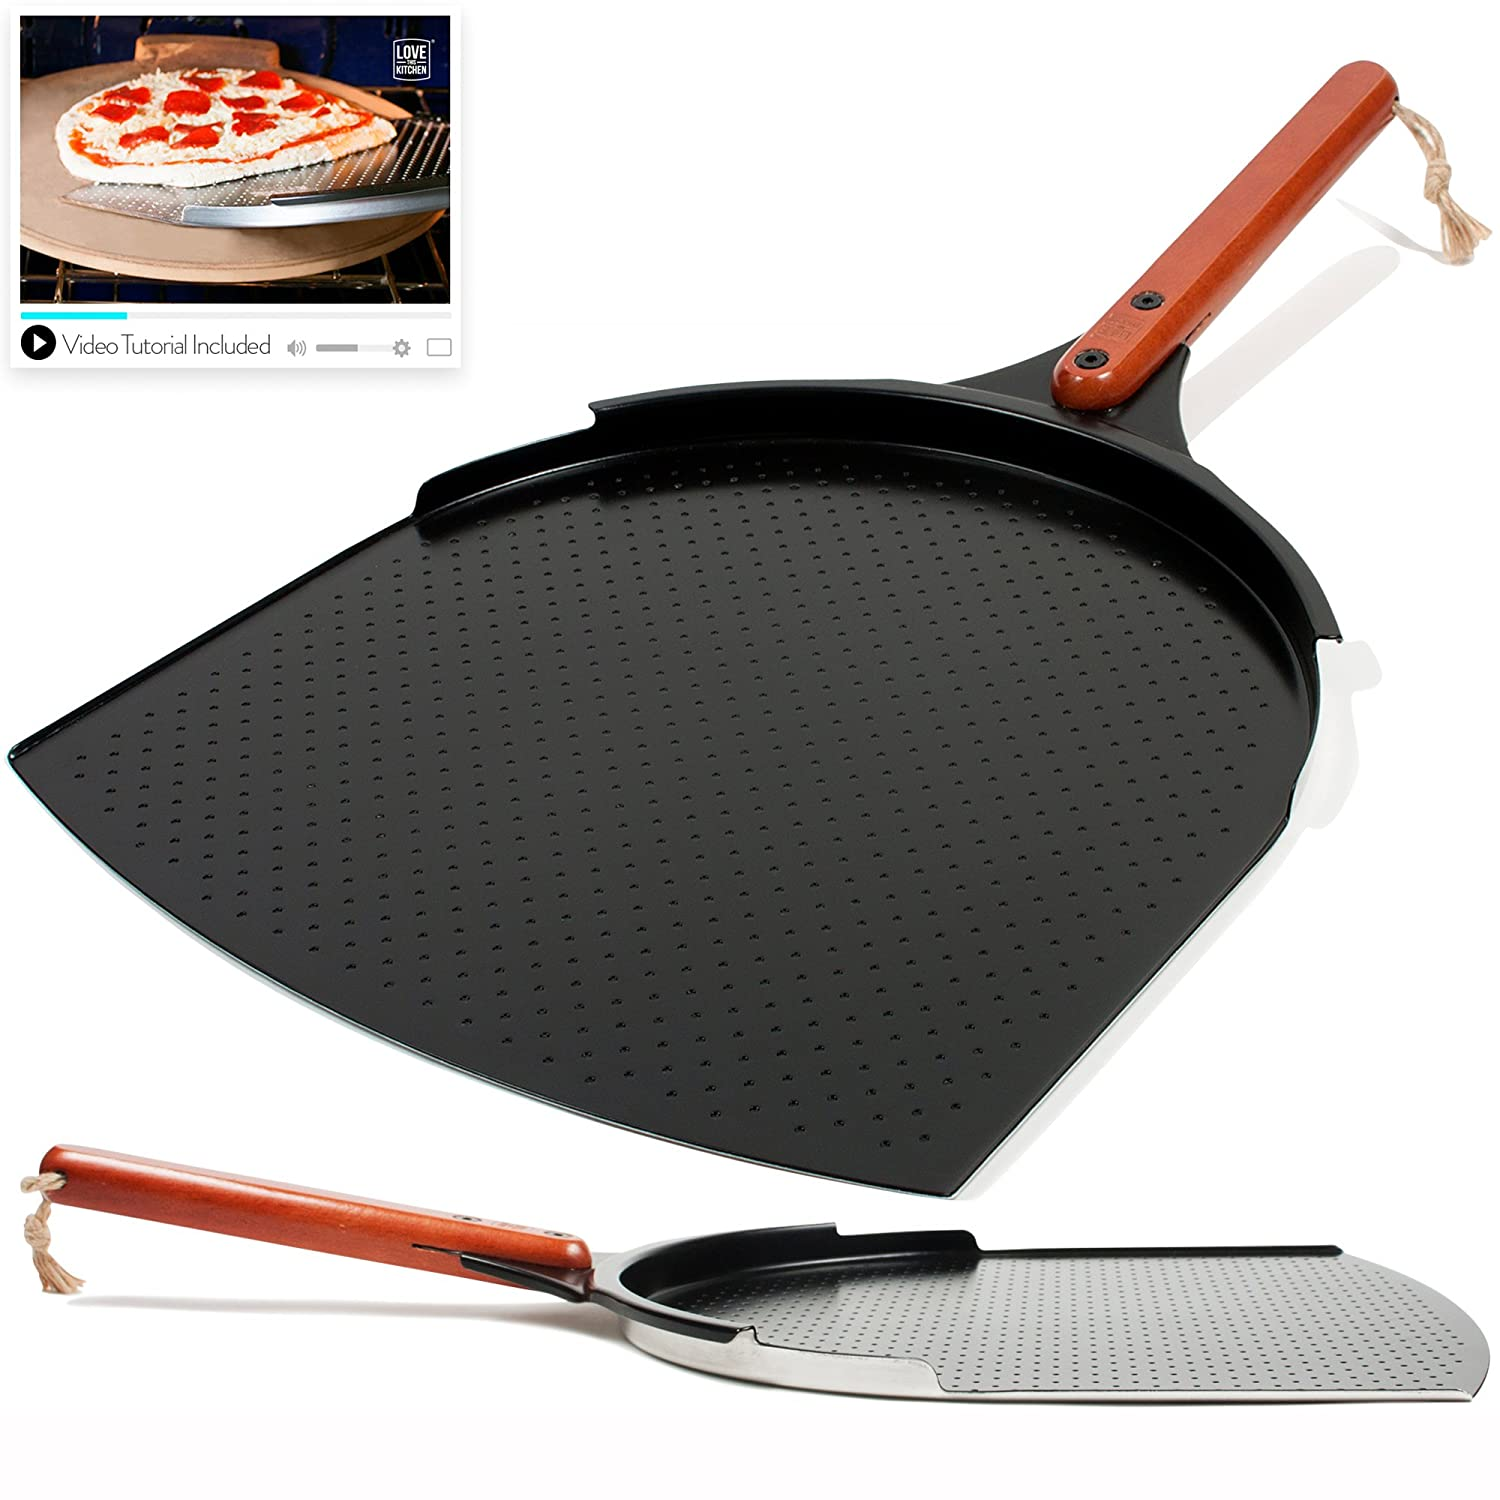 Best Pizza Peel #5: LOVE THIS KITCHEN Aluminum Pizza Peel